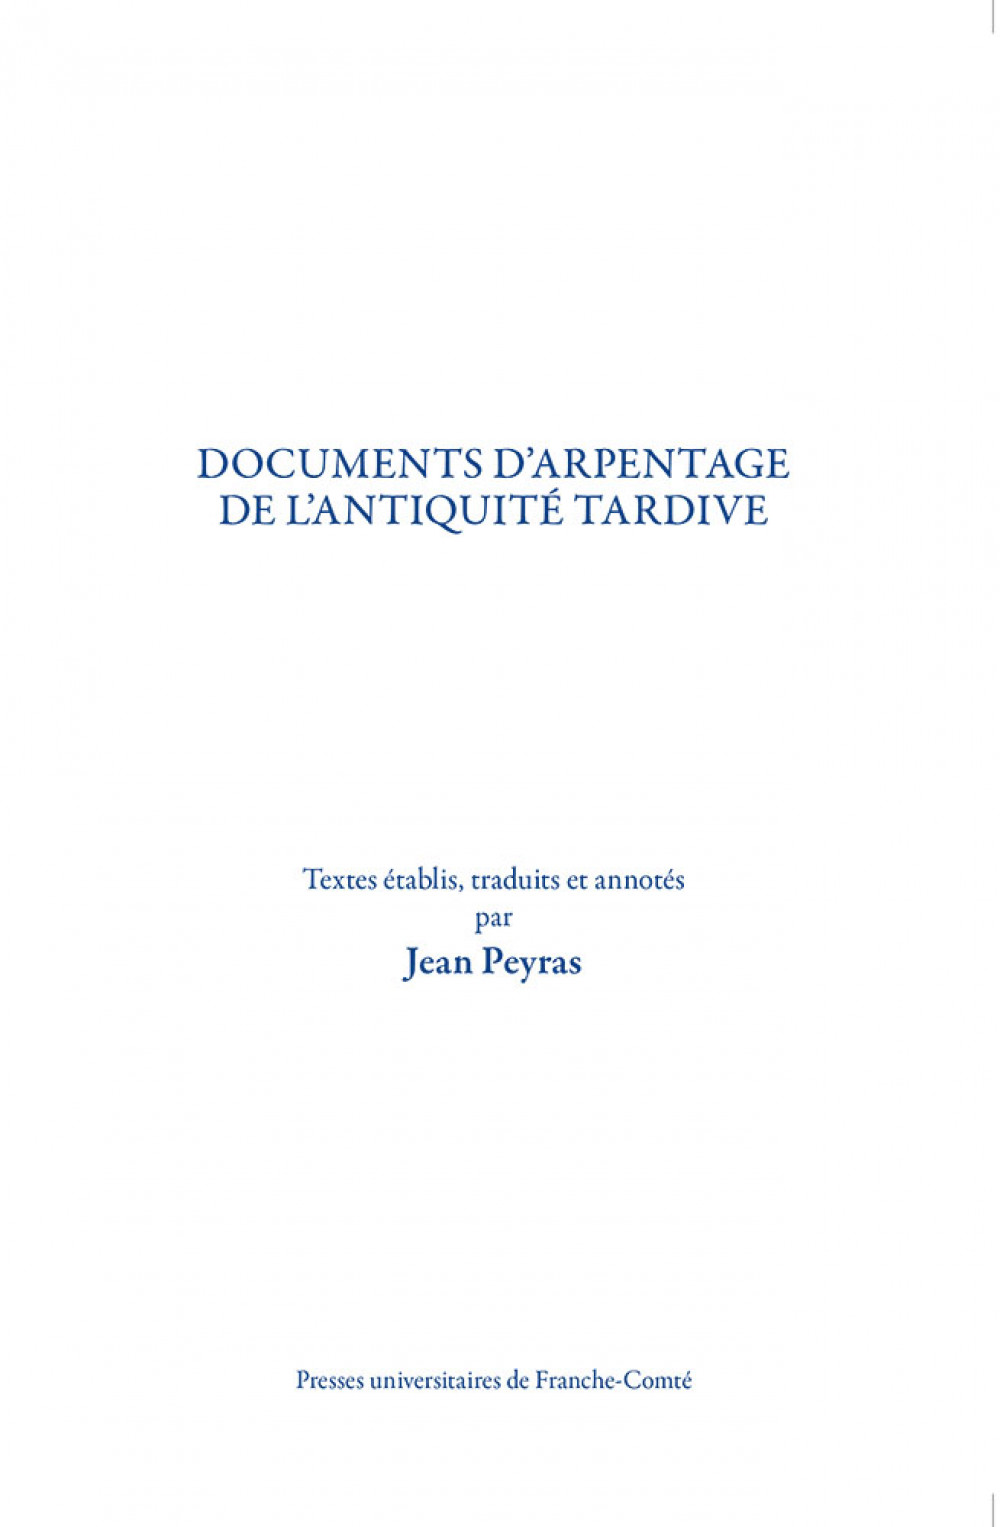 Documents d'arpentage de l'Antiquité tardive